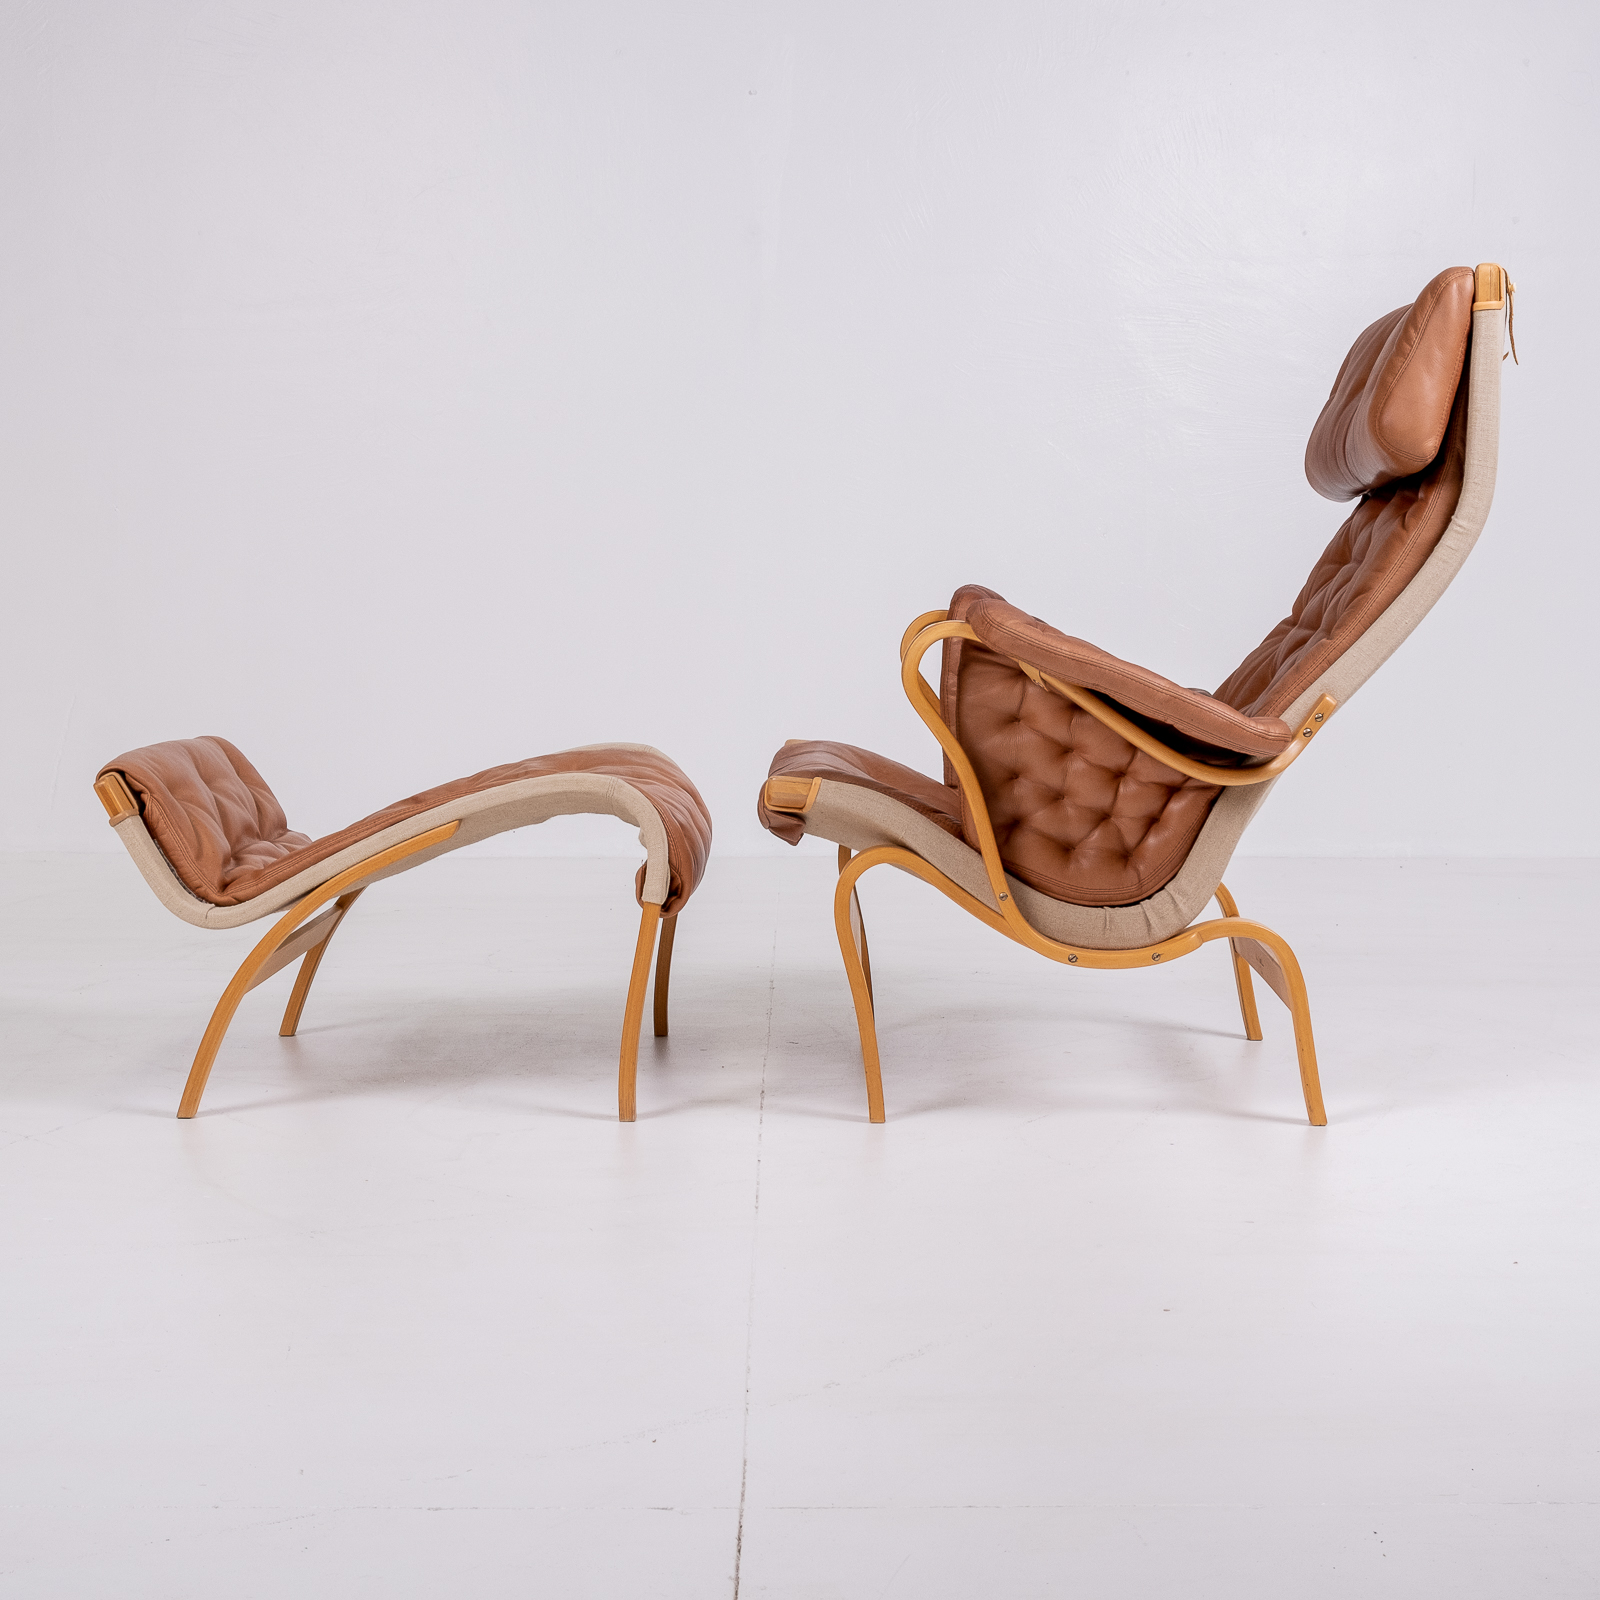 Pernilla 69 Chair With Footstool By Bruno Mathsson For Dux, 1960s, Sweden 02